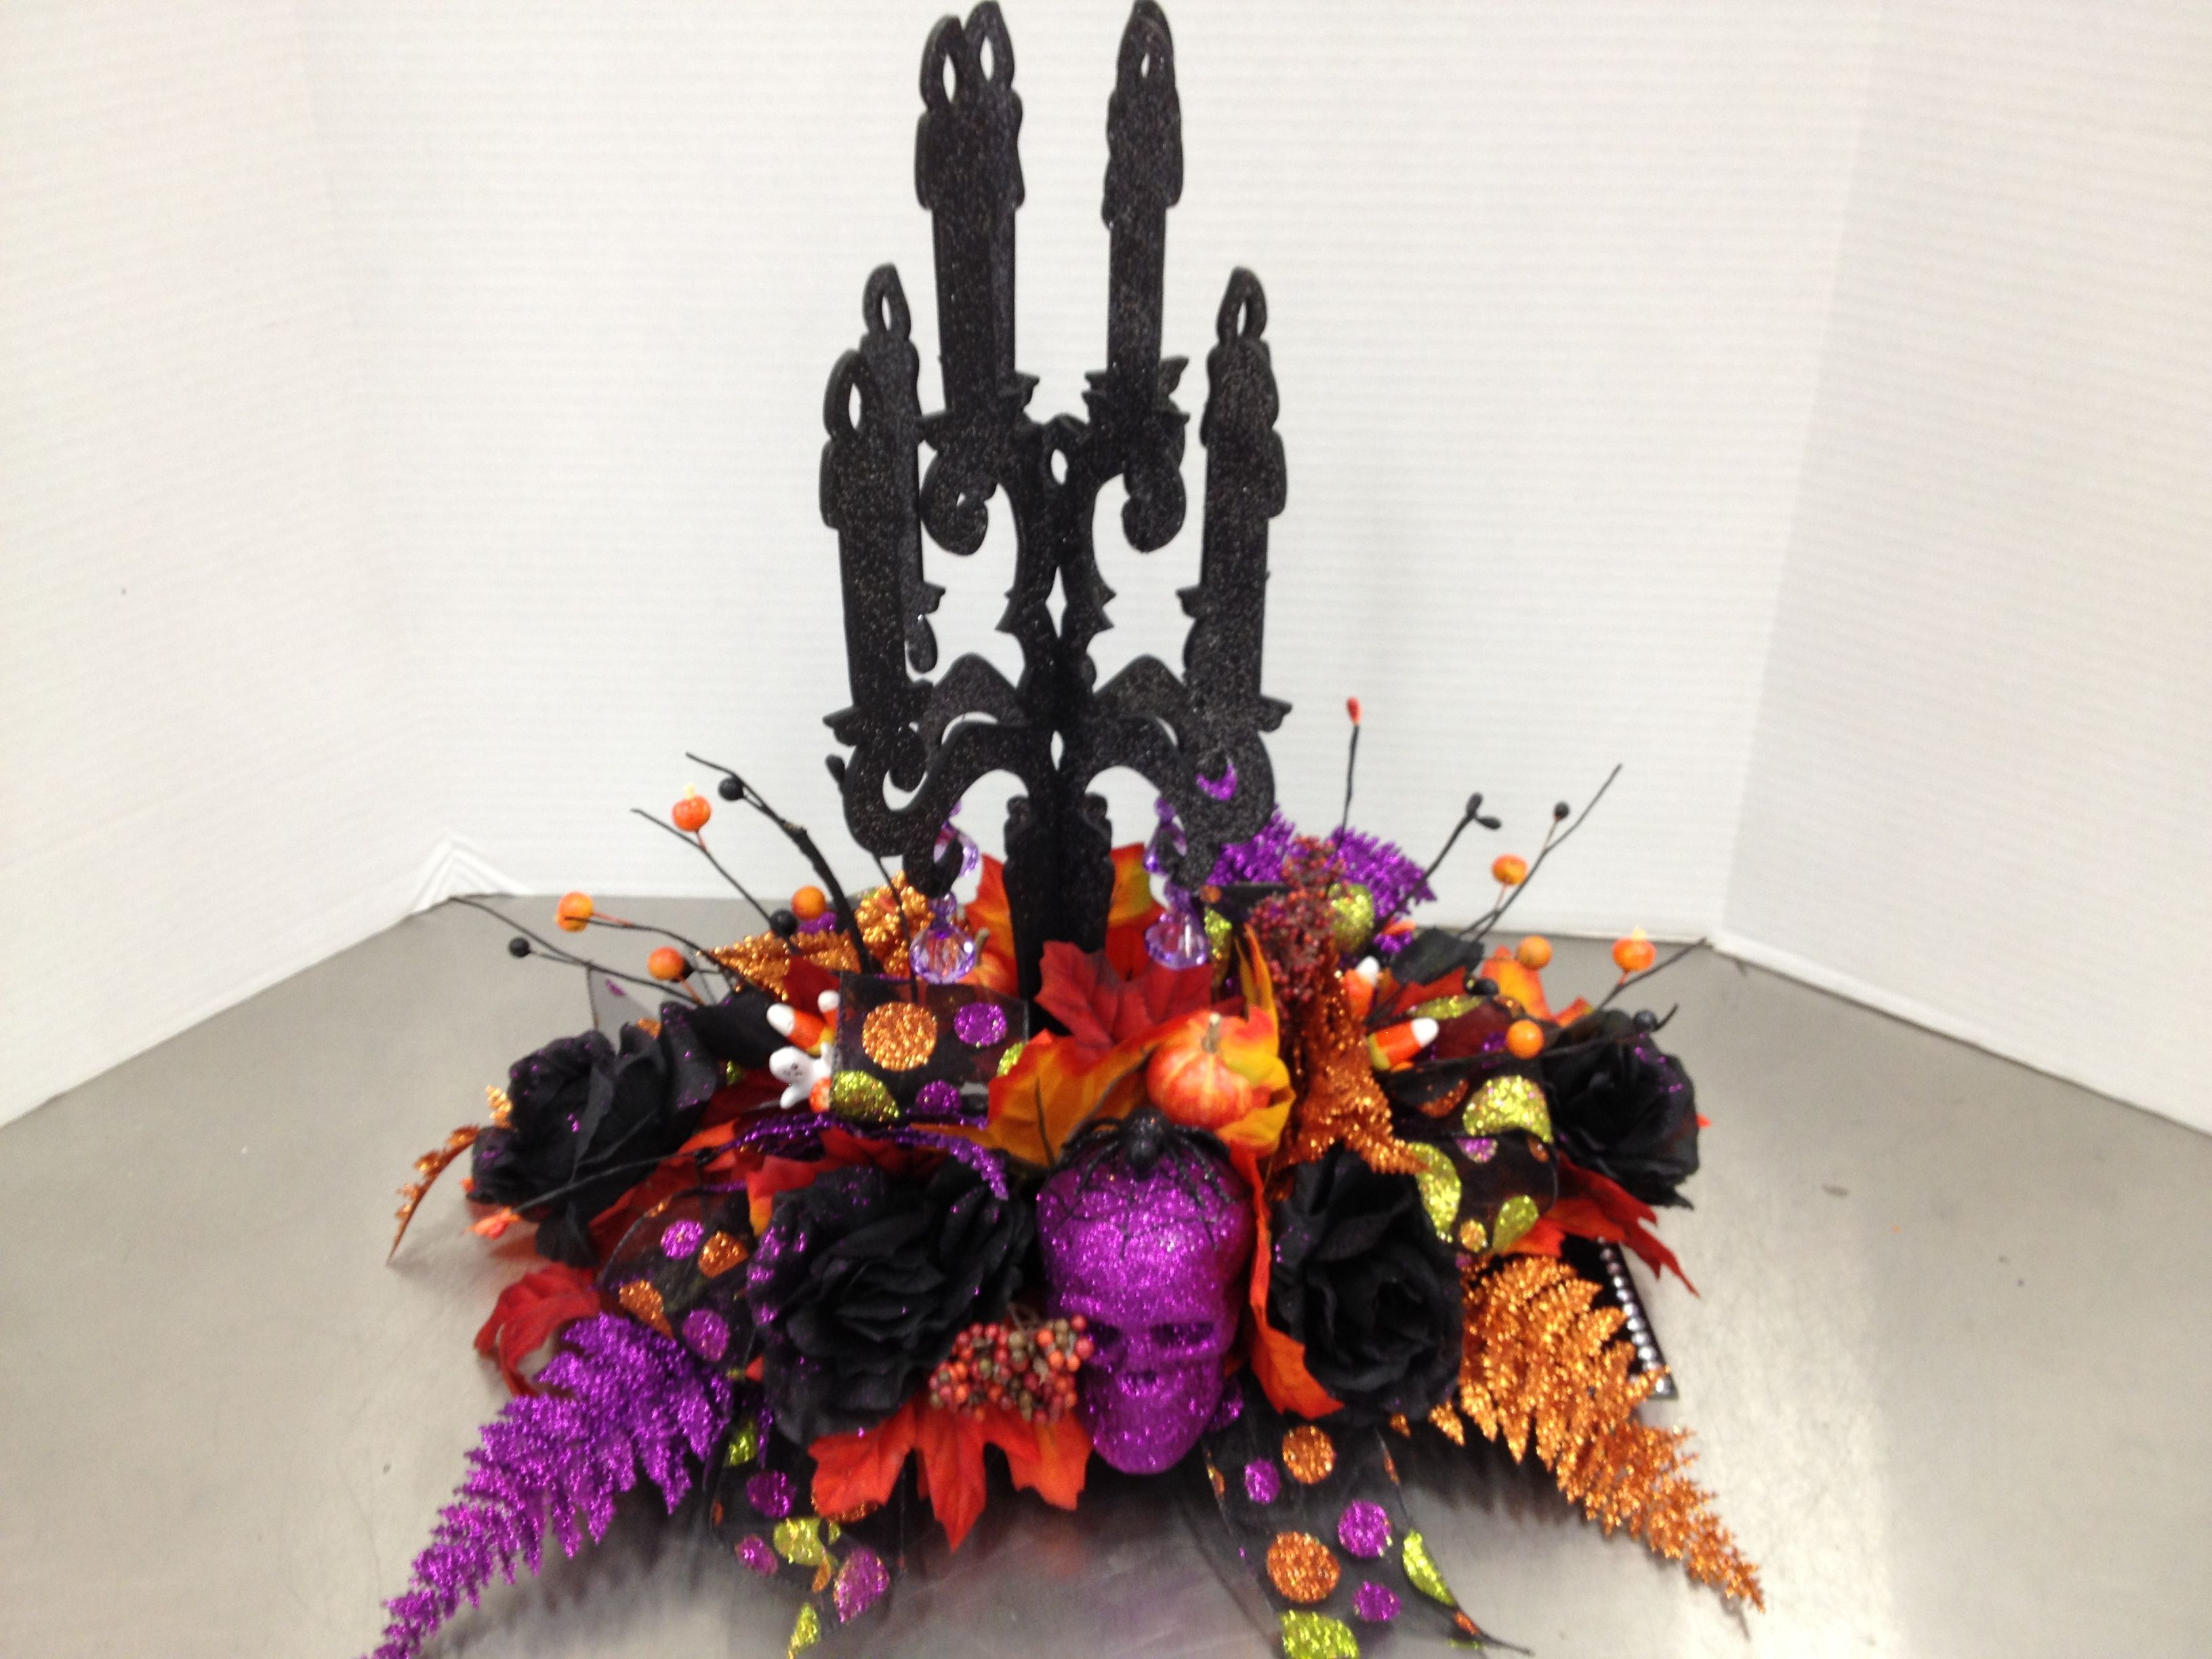 Talented Michaels Designers  Halloween Candy Themed Candelabra Centerpiece Design